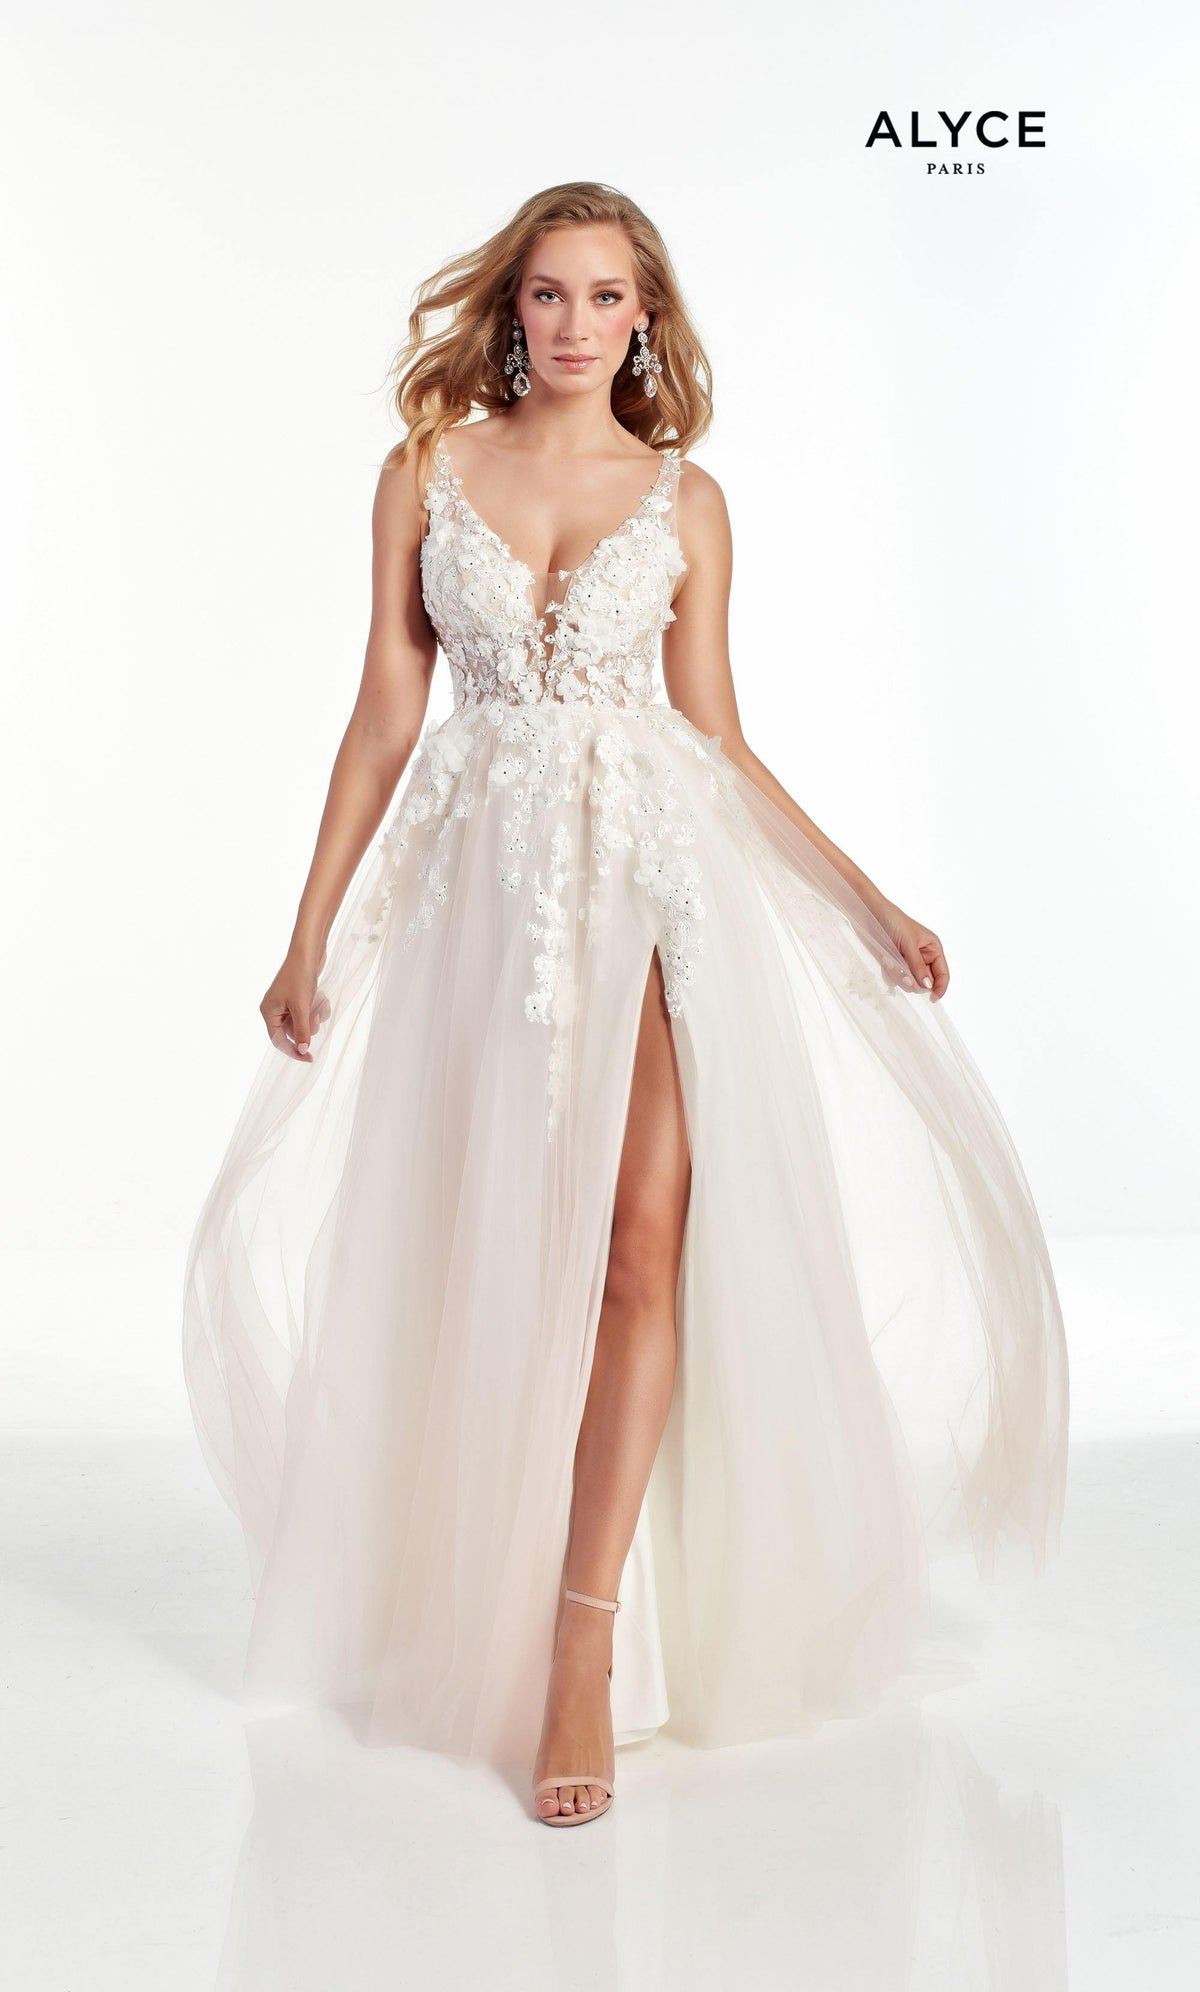 Diamond White-Blush prom dress with a plunging neckline, 3D floral embroidery, and front slit